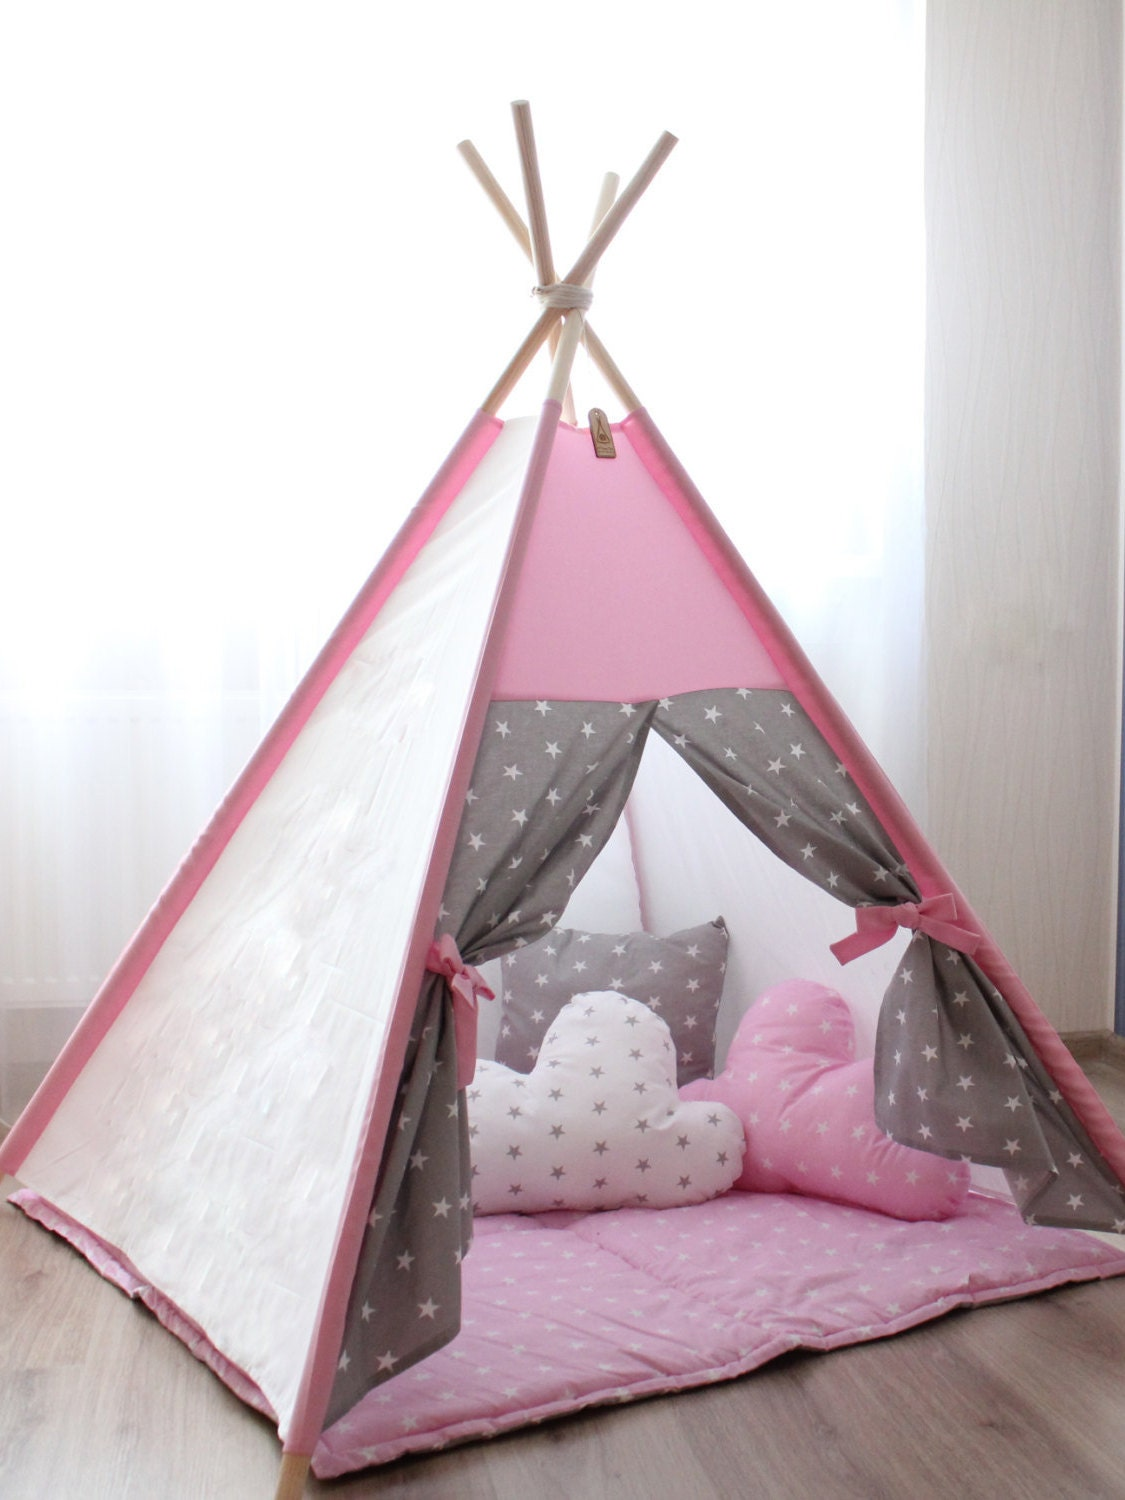 Kids Teepee Teepee Tent Pink And Grey Teepee By Teepeetwee